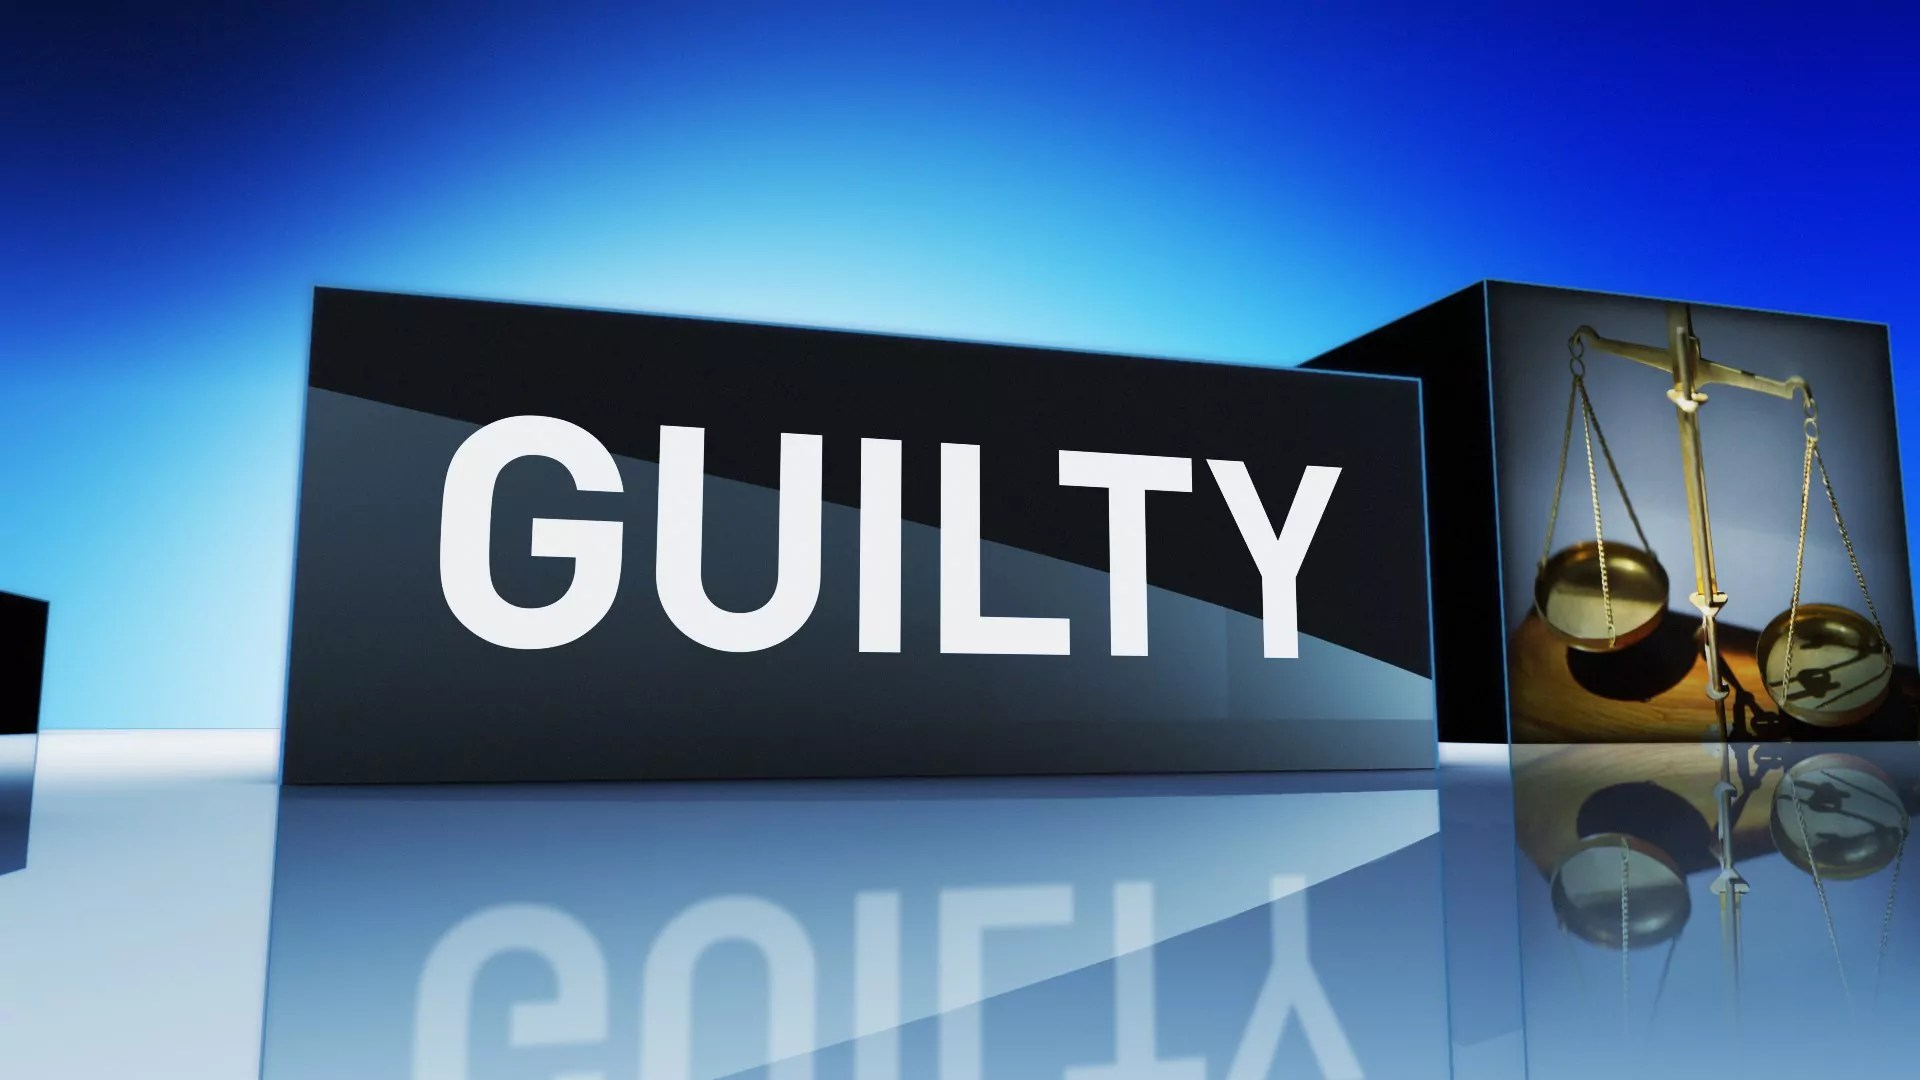 Financial Fraud: Michael Kent Pleaded Guilty To Federal Wire Fraud Conspiracy Charges